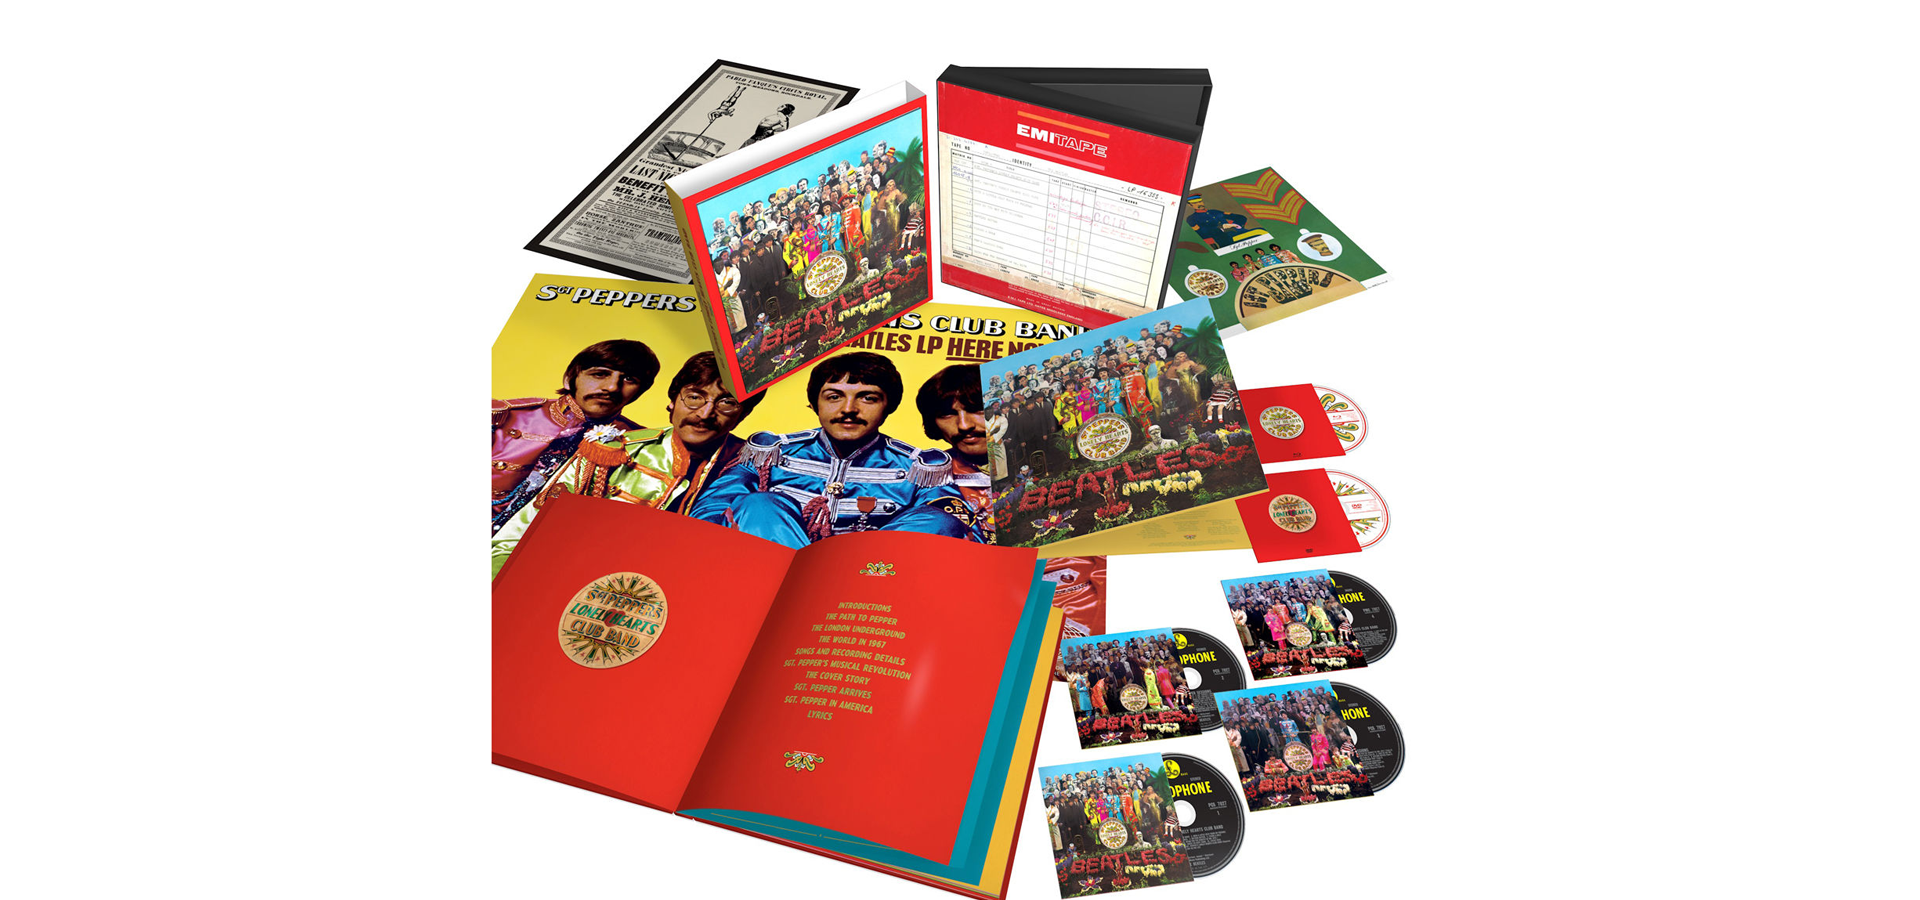 It was 50 years ago: special anniversary releases